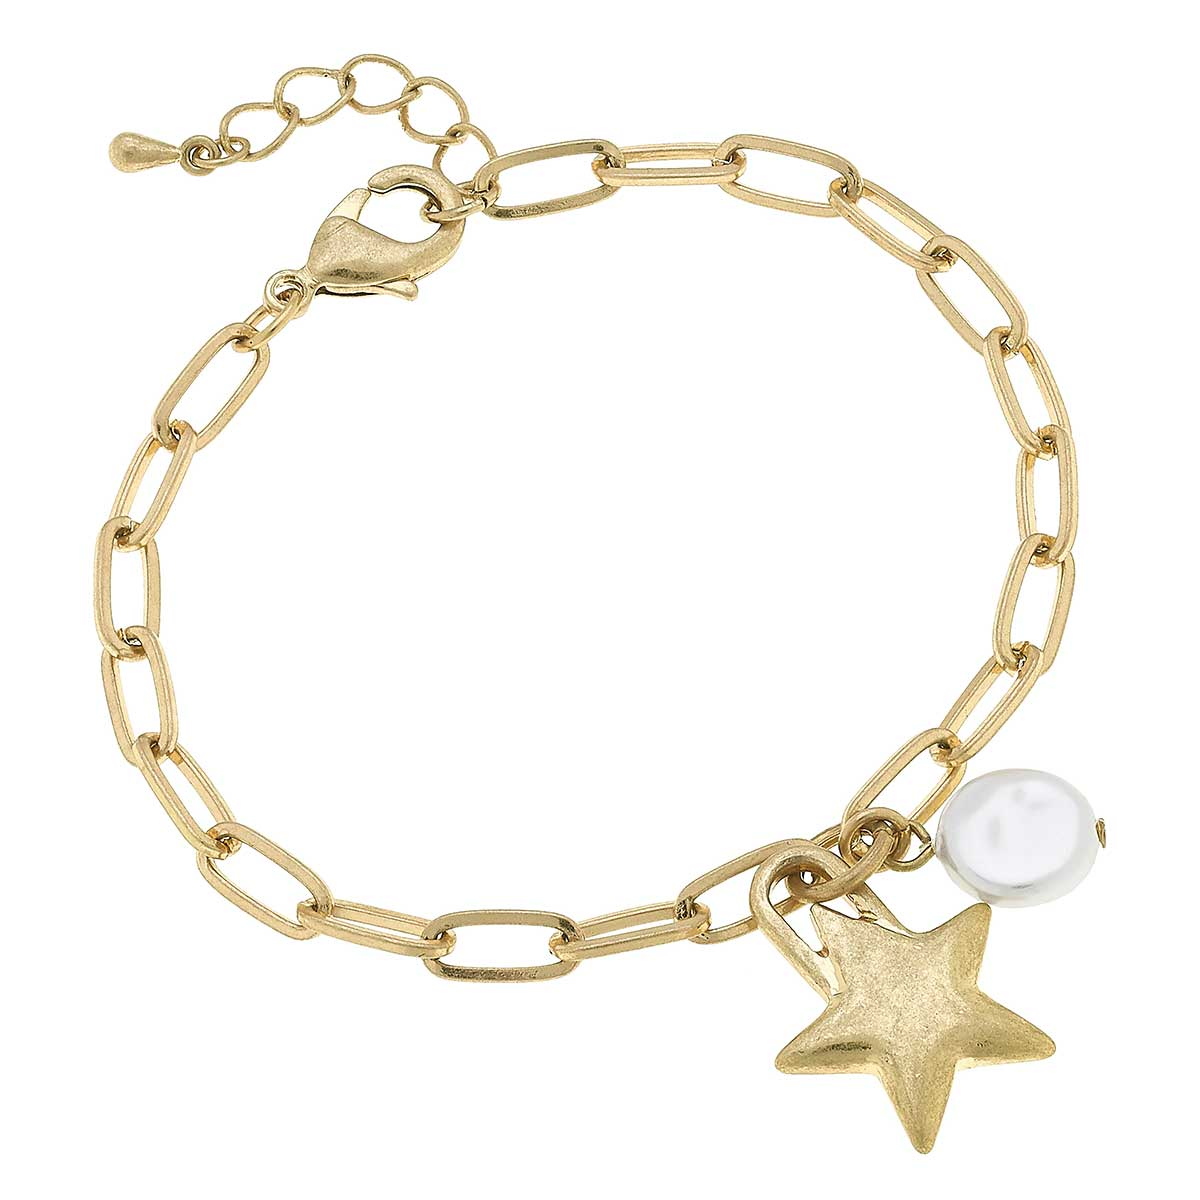 Darcey Paperclip Chain Charm Bracelet in Worn Gold